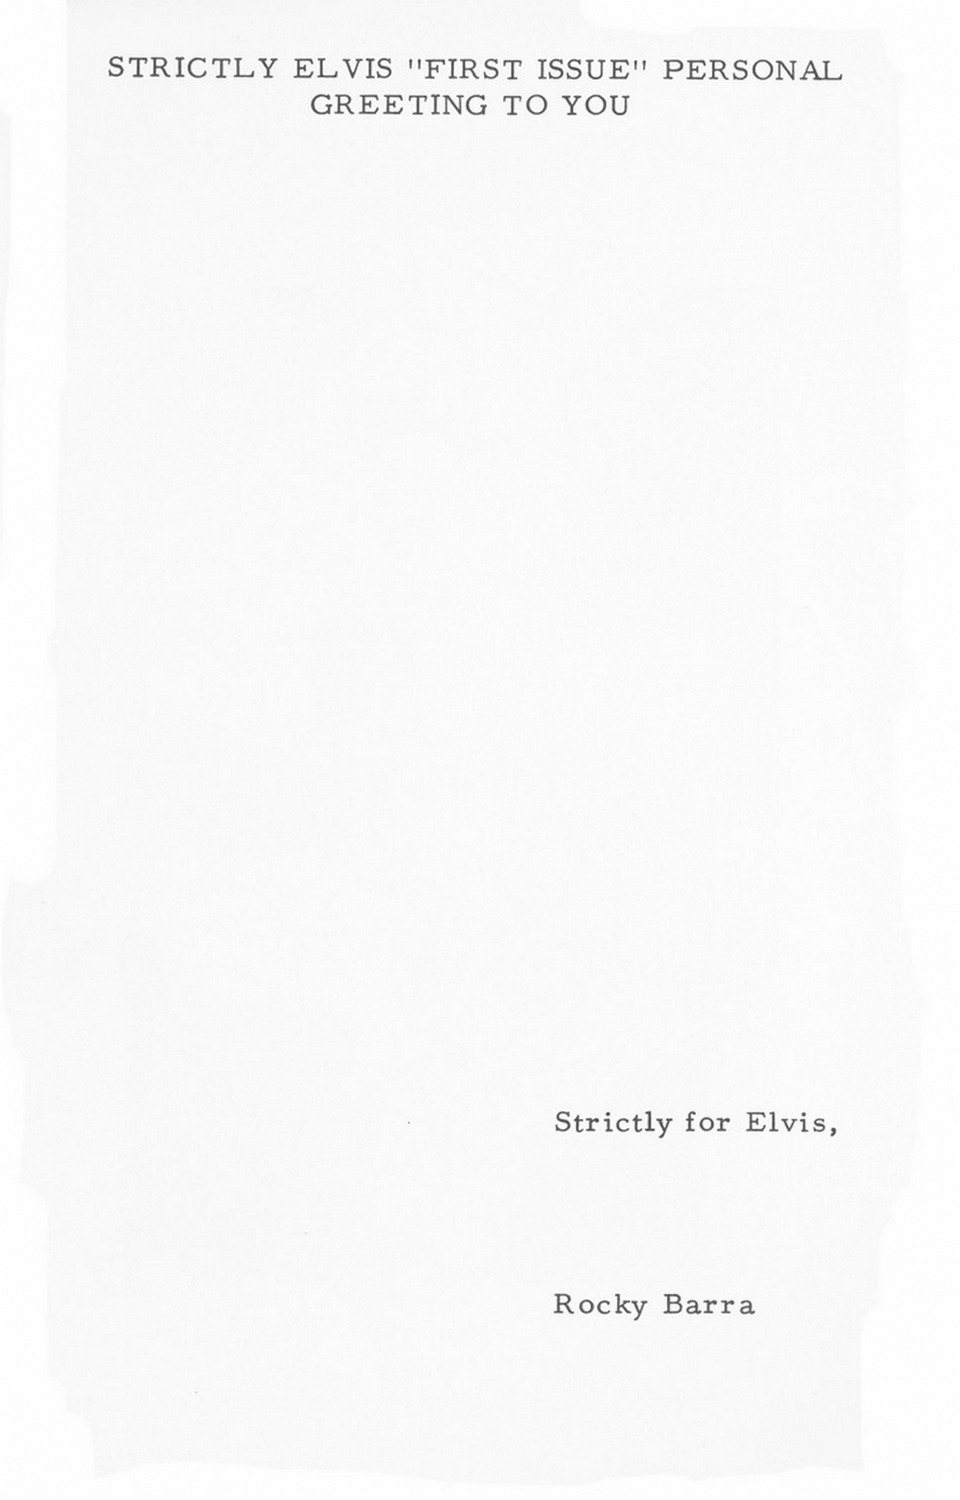 Strictly Elvis No. 1 May 1968 34